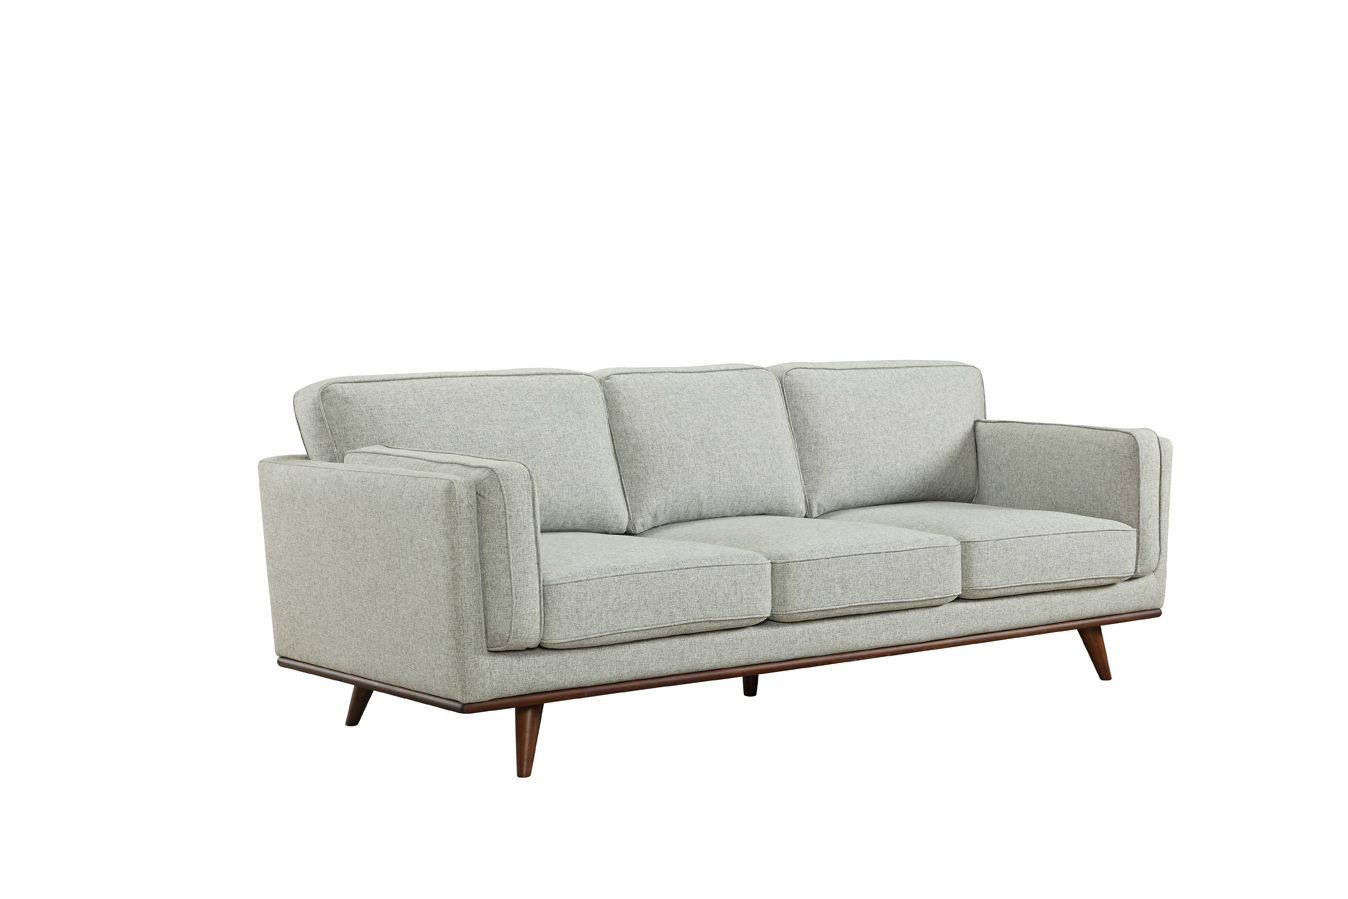 Camden Sofa Camden Sofa In Three Sizes Creative Clics